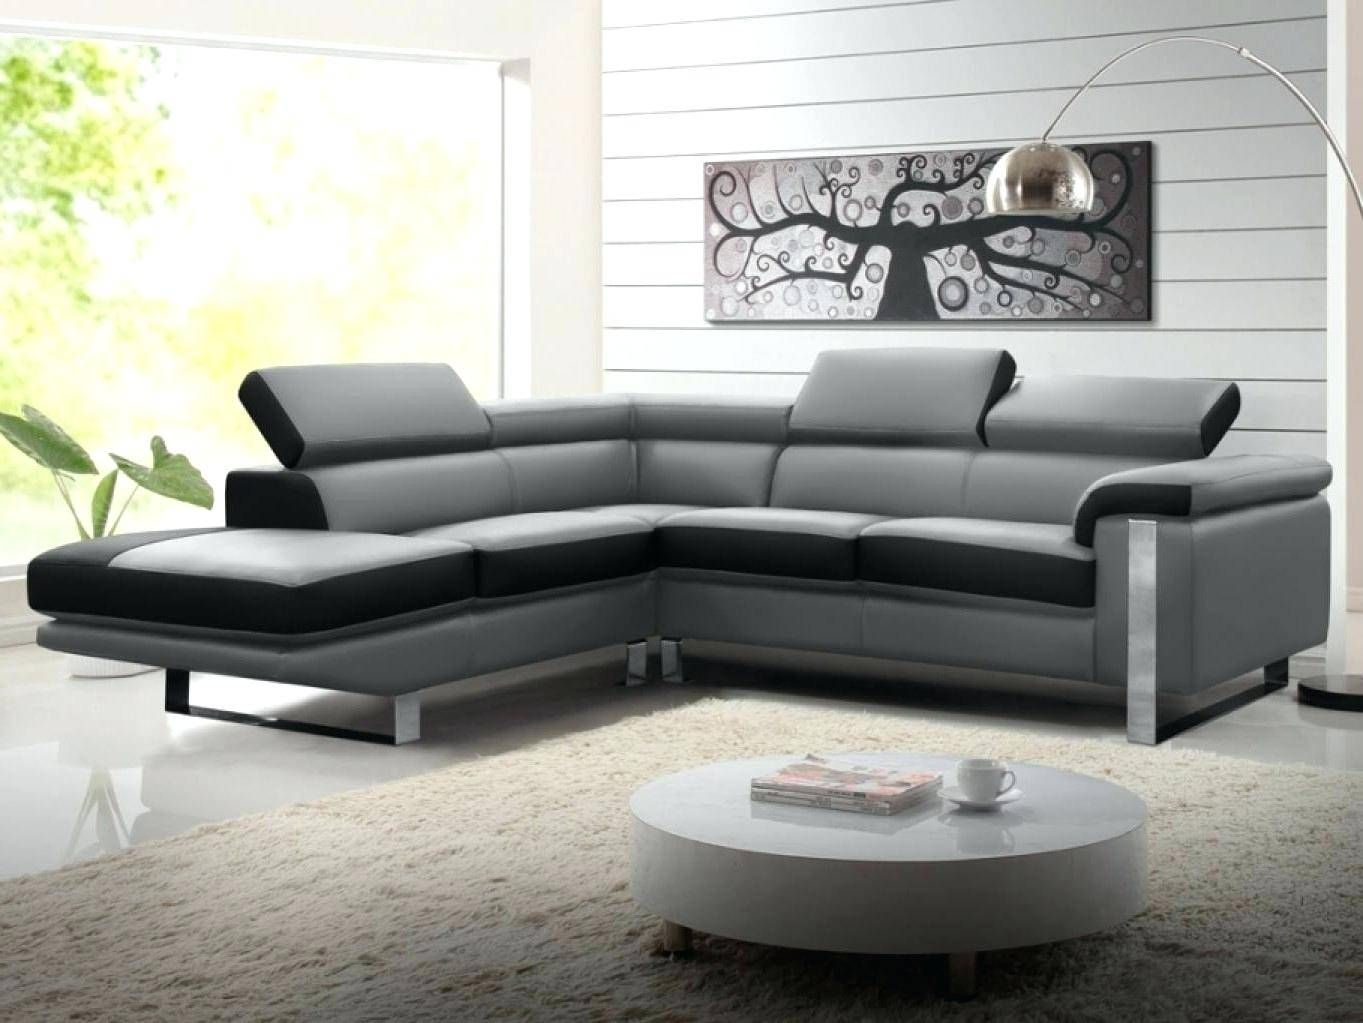 Pin By Satriorizkyy On Home Decor Ideas In 2020 Home Decor Modern Couch Furniture